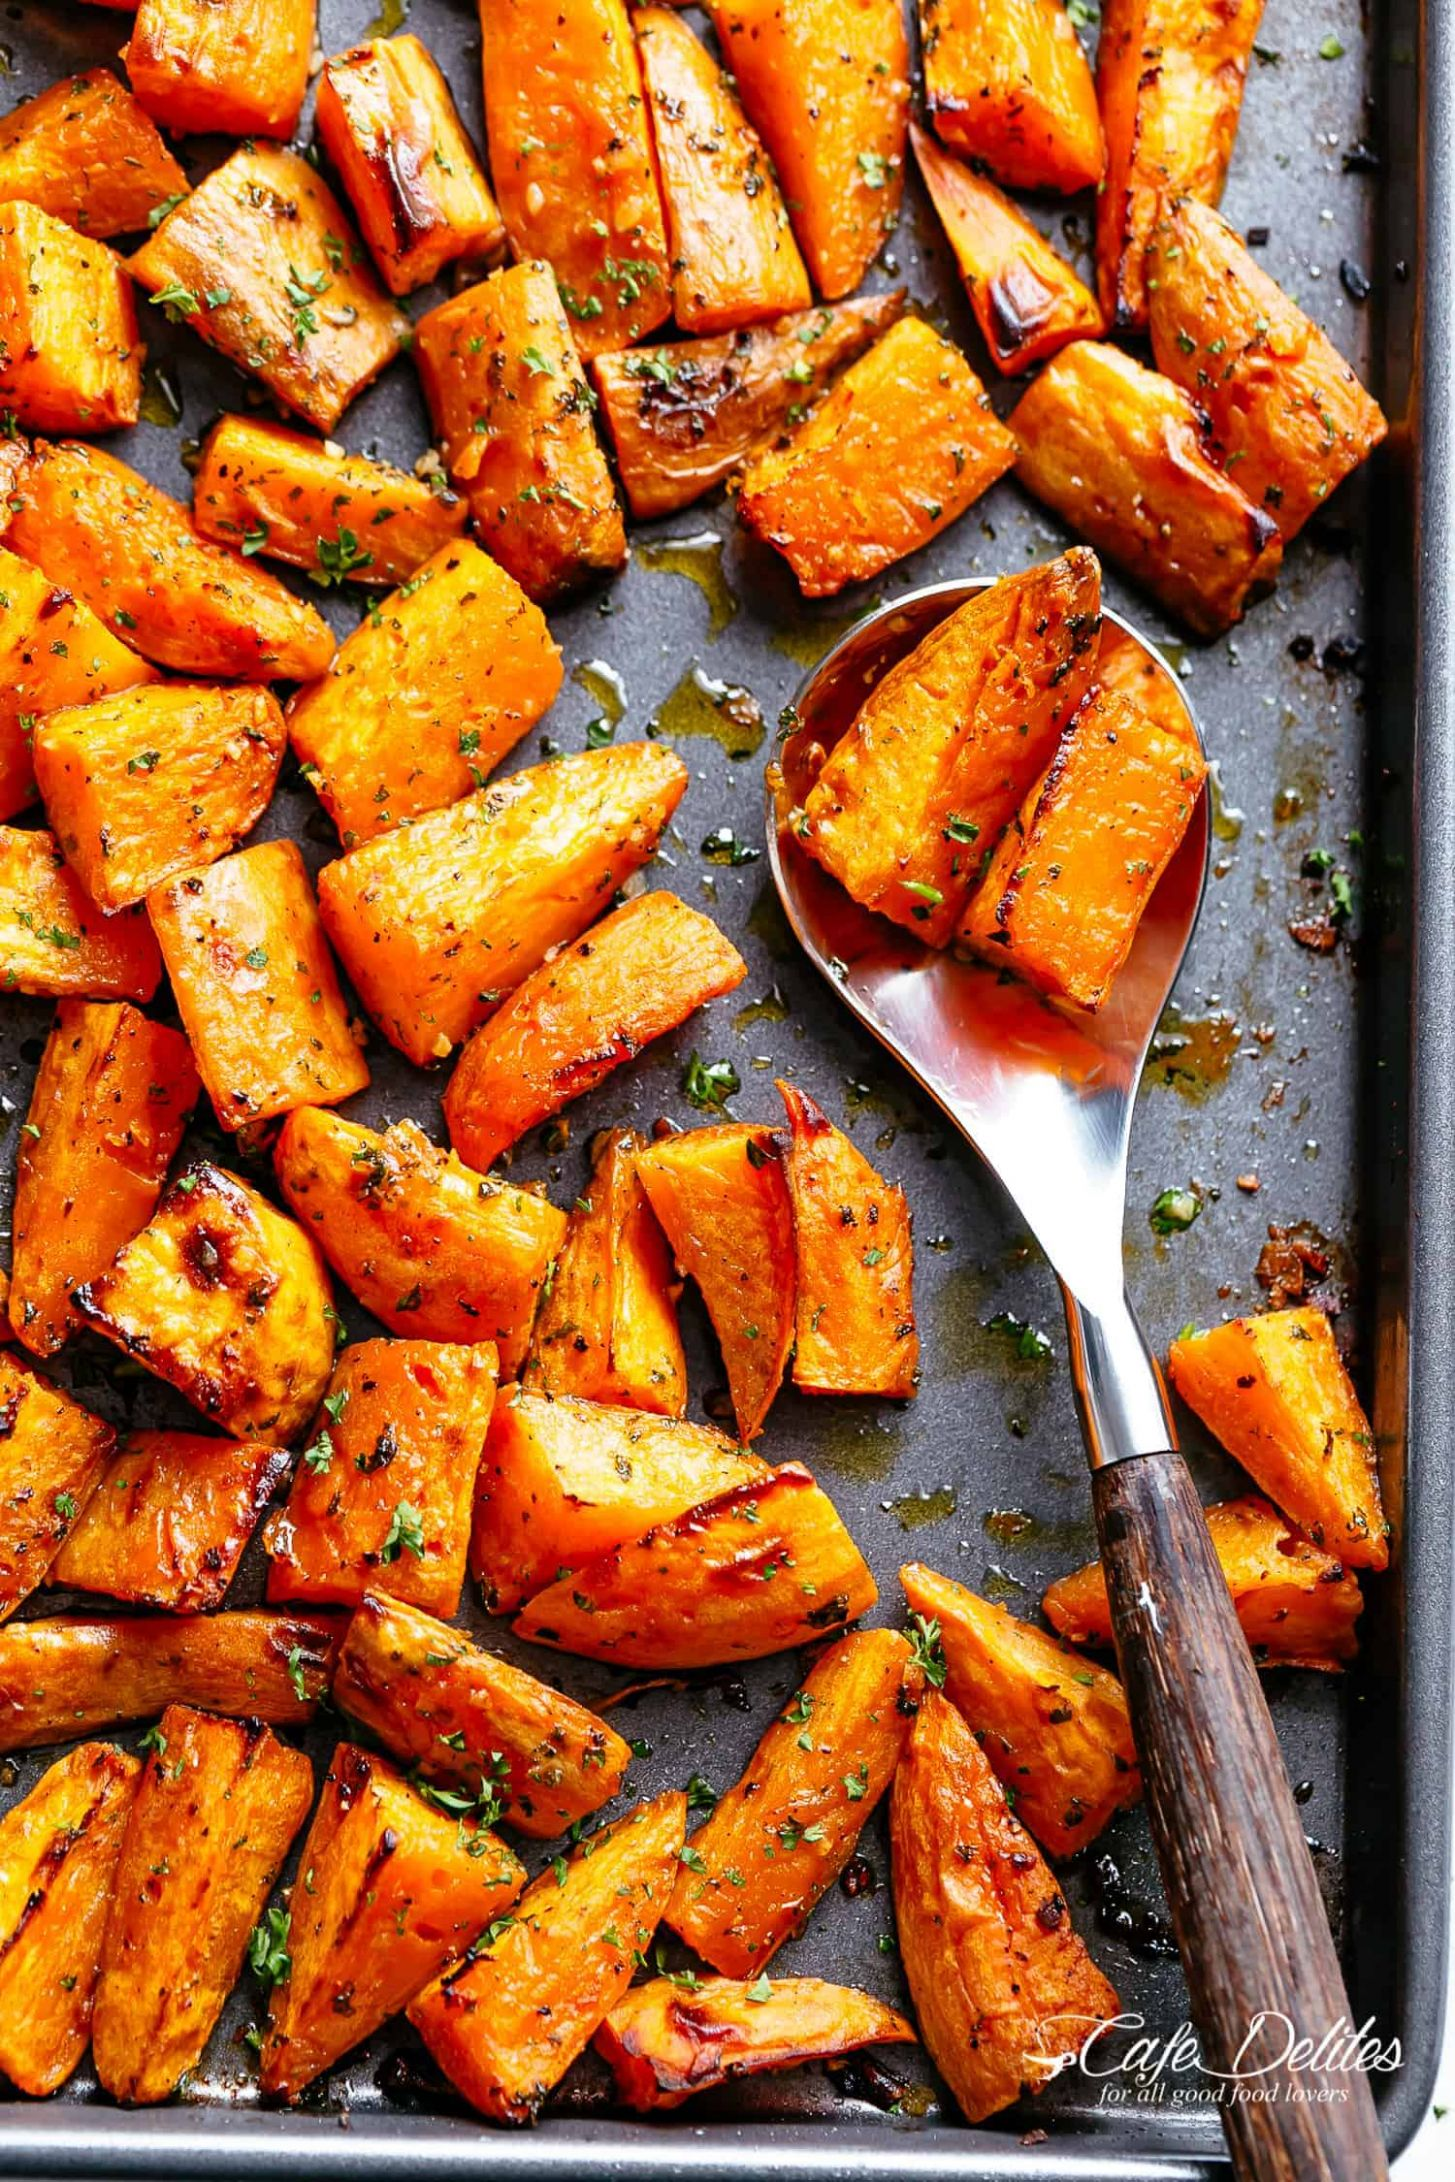 Roasted Sweet Potatoes - Cafe Delites - Simple Yam Recipes Baked